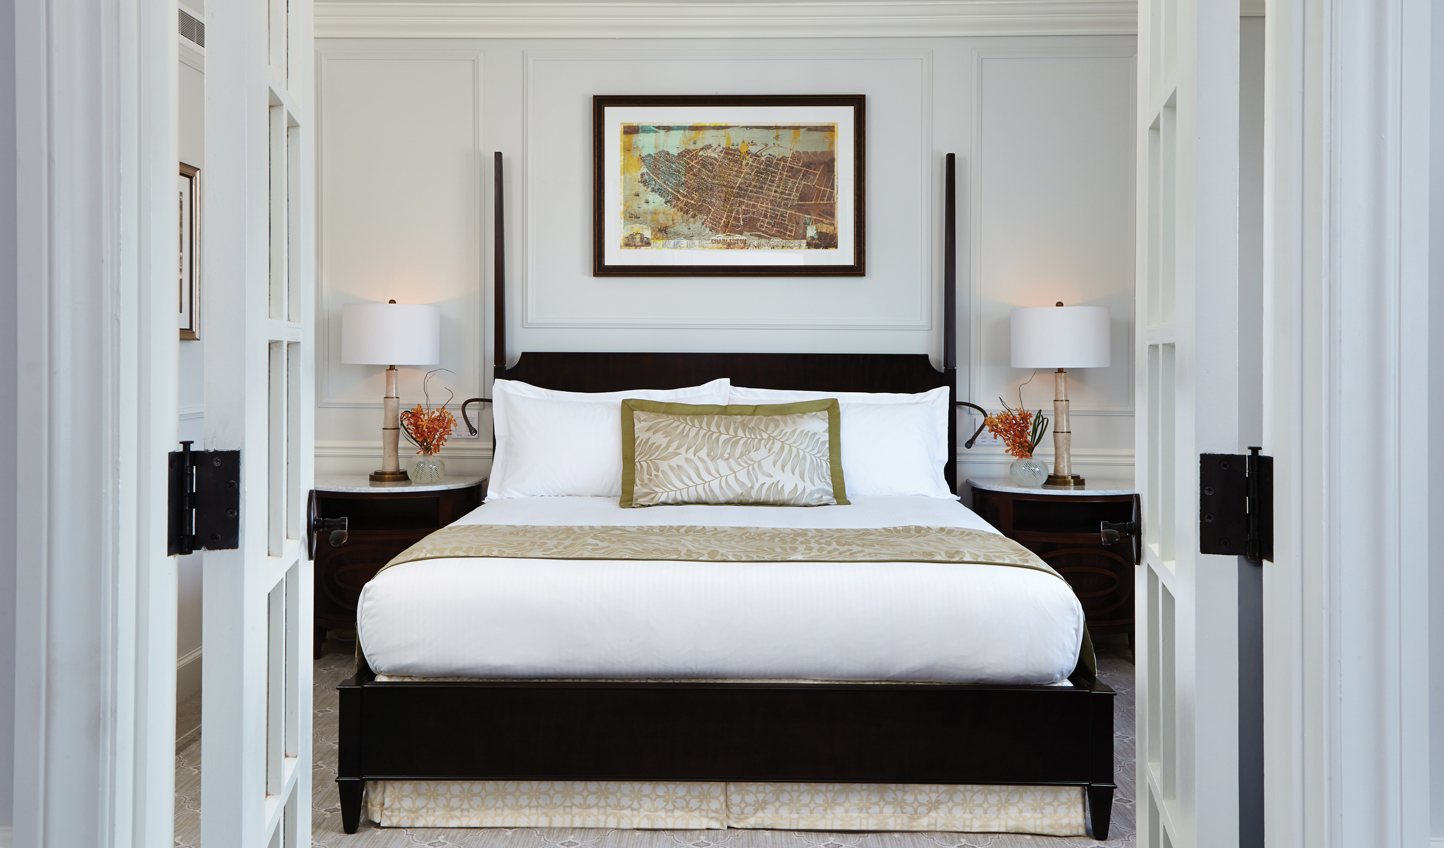 Fall into a sumptuous king-size bed